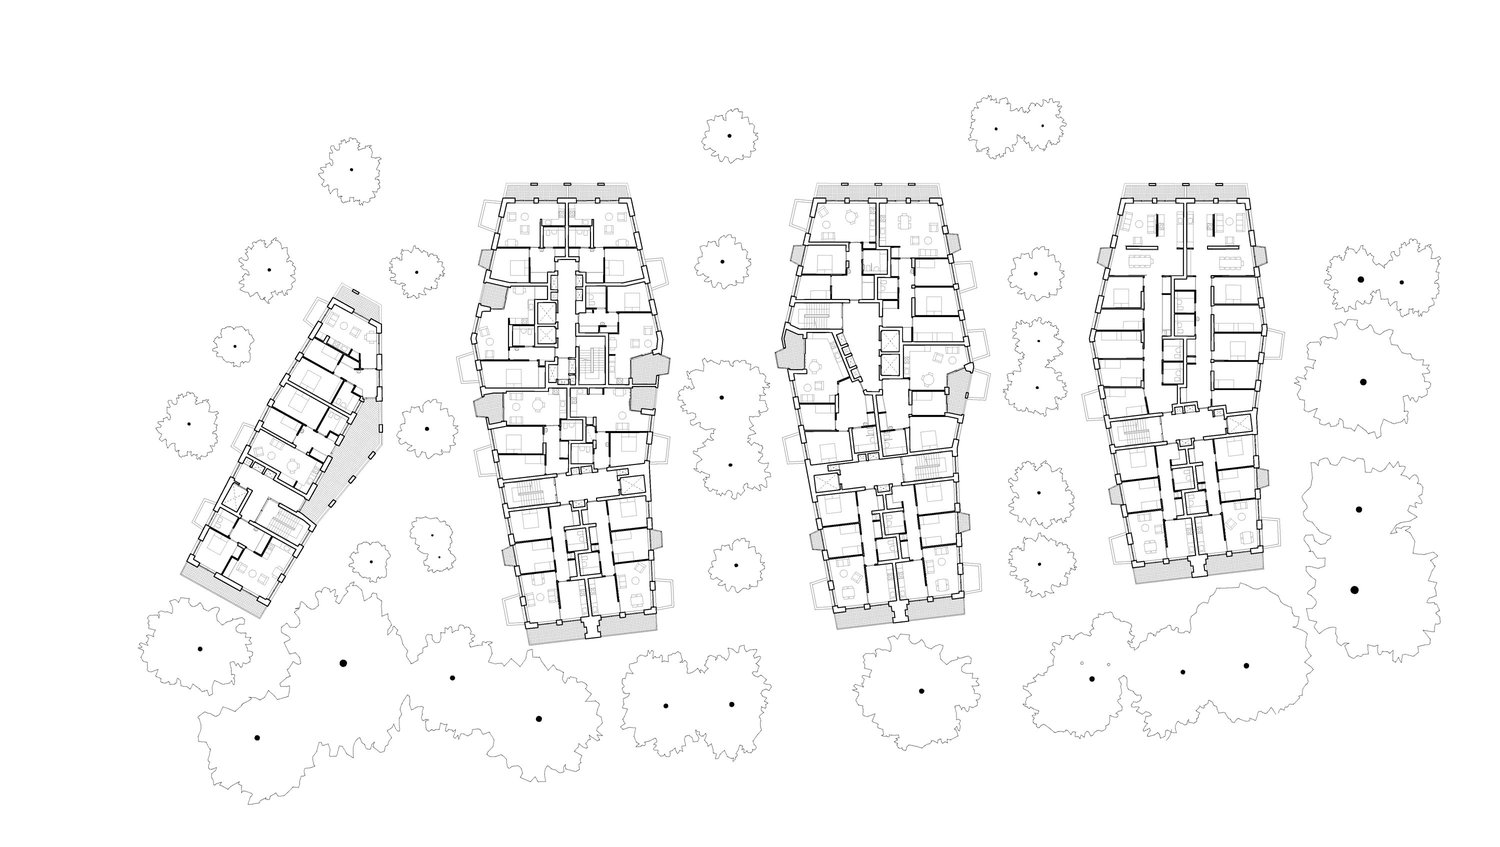 AKA_062_TowerCourt_plan_P02.jpg